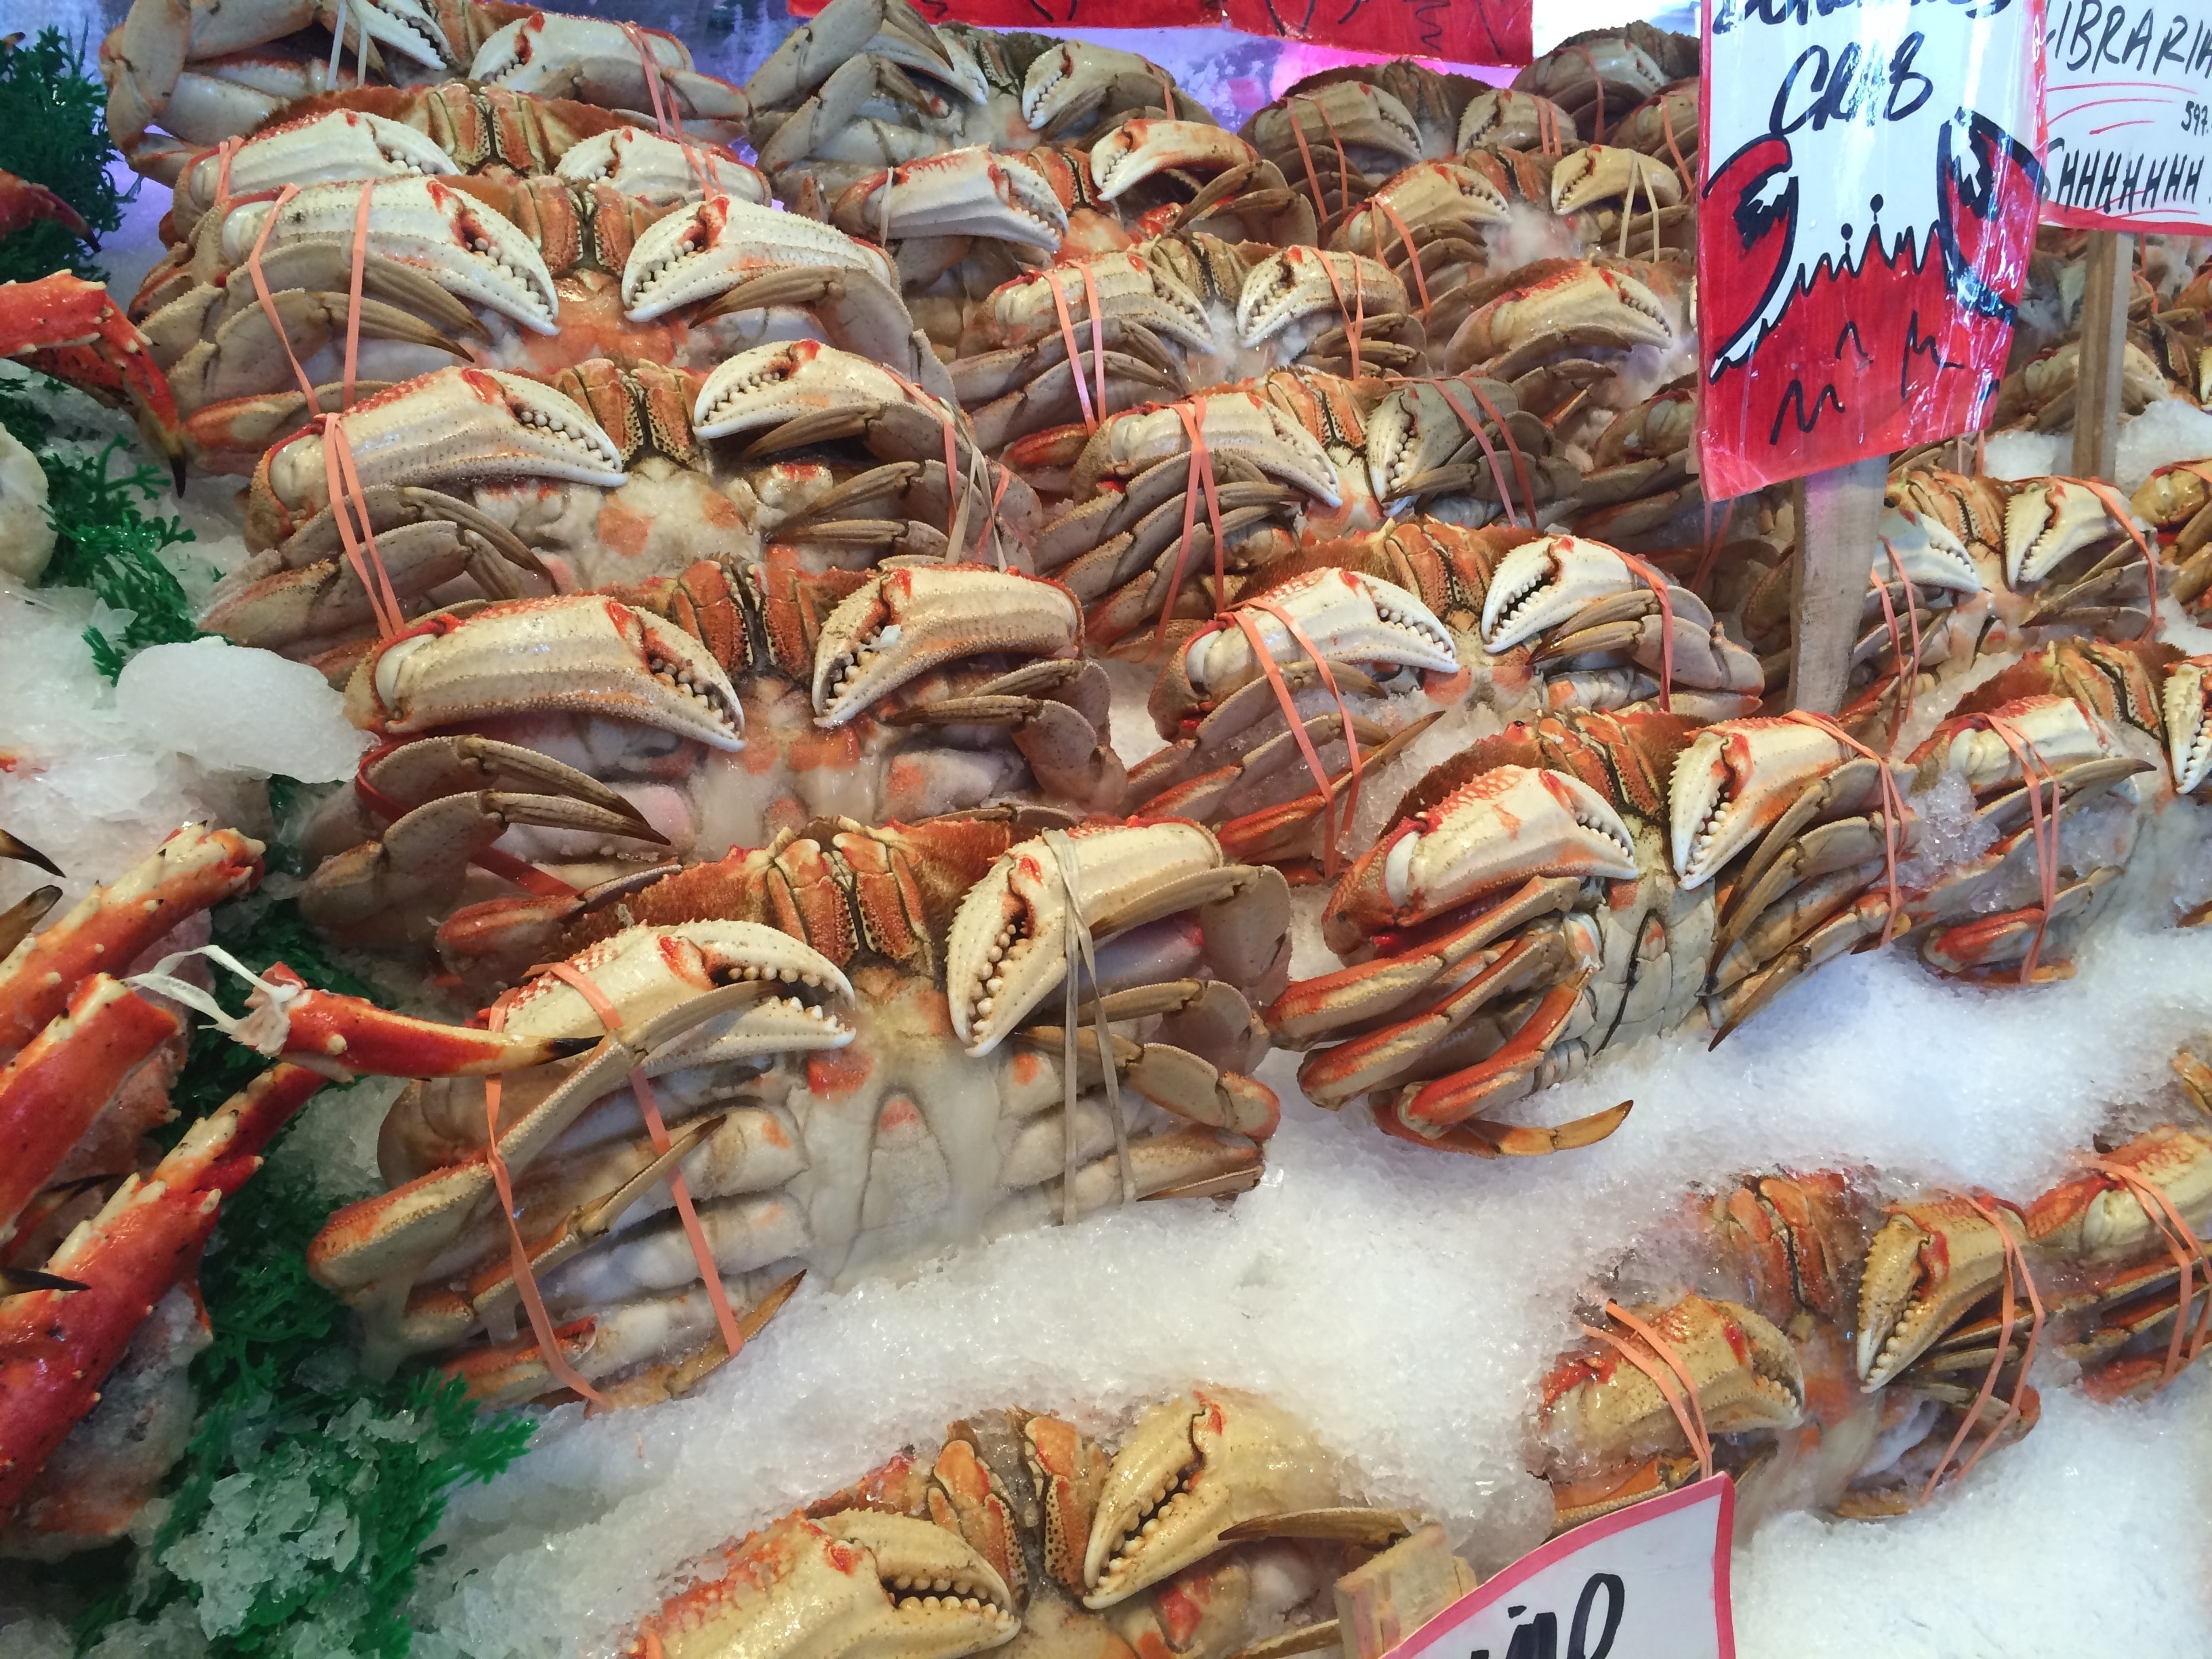 King crabs on ice at a seafood market